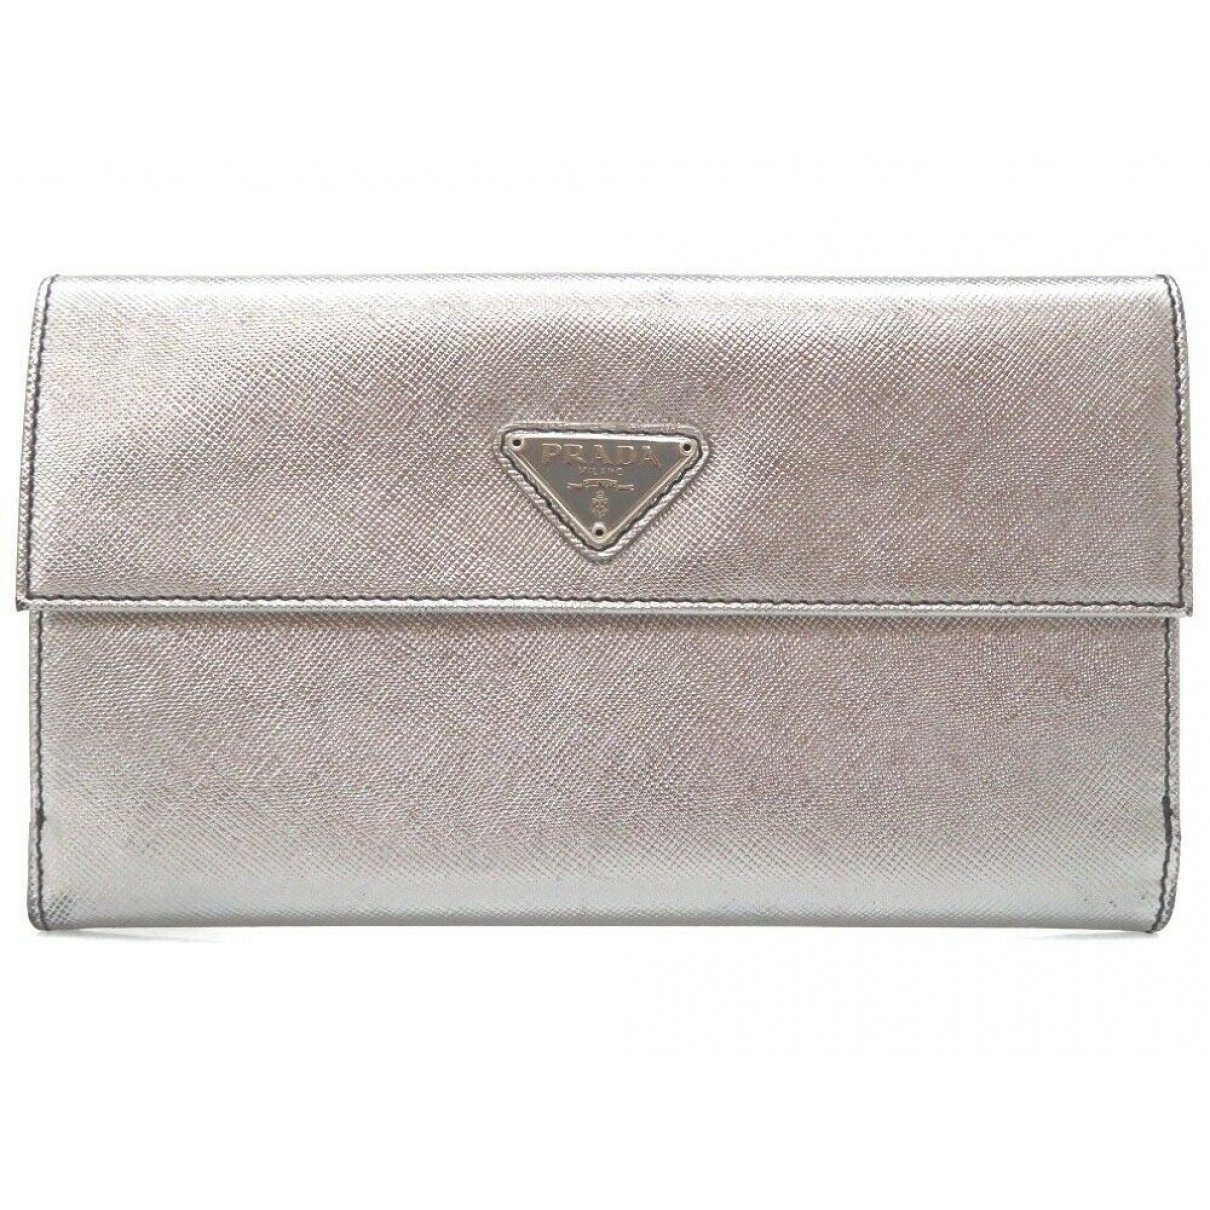 Prada \N Silver wallet for Women \N